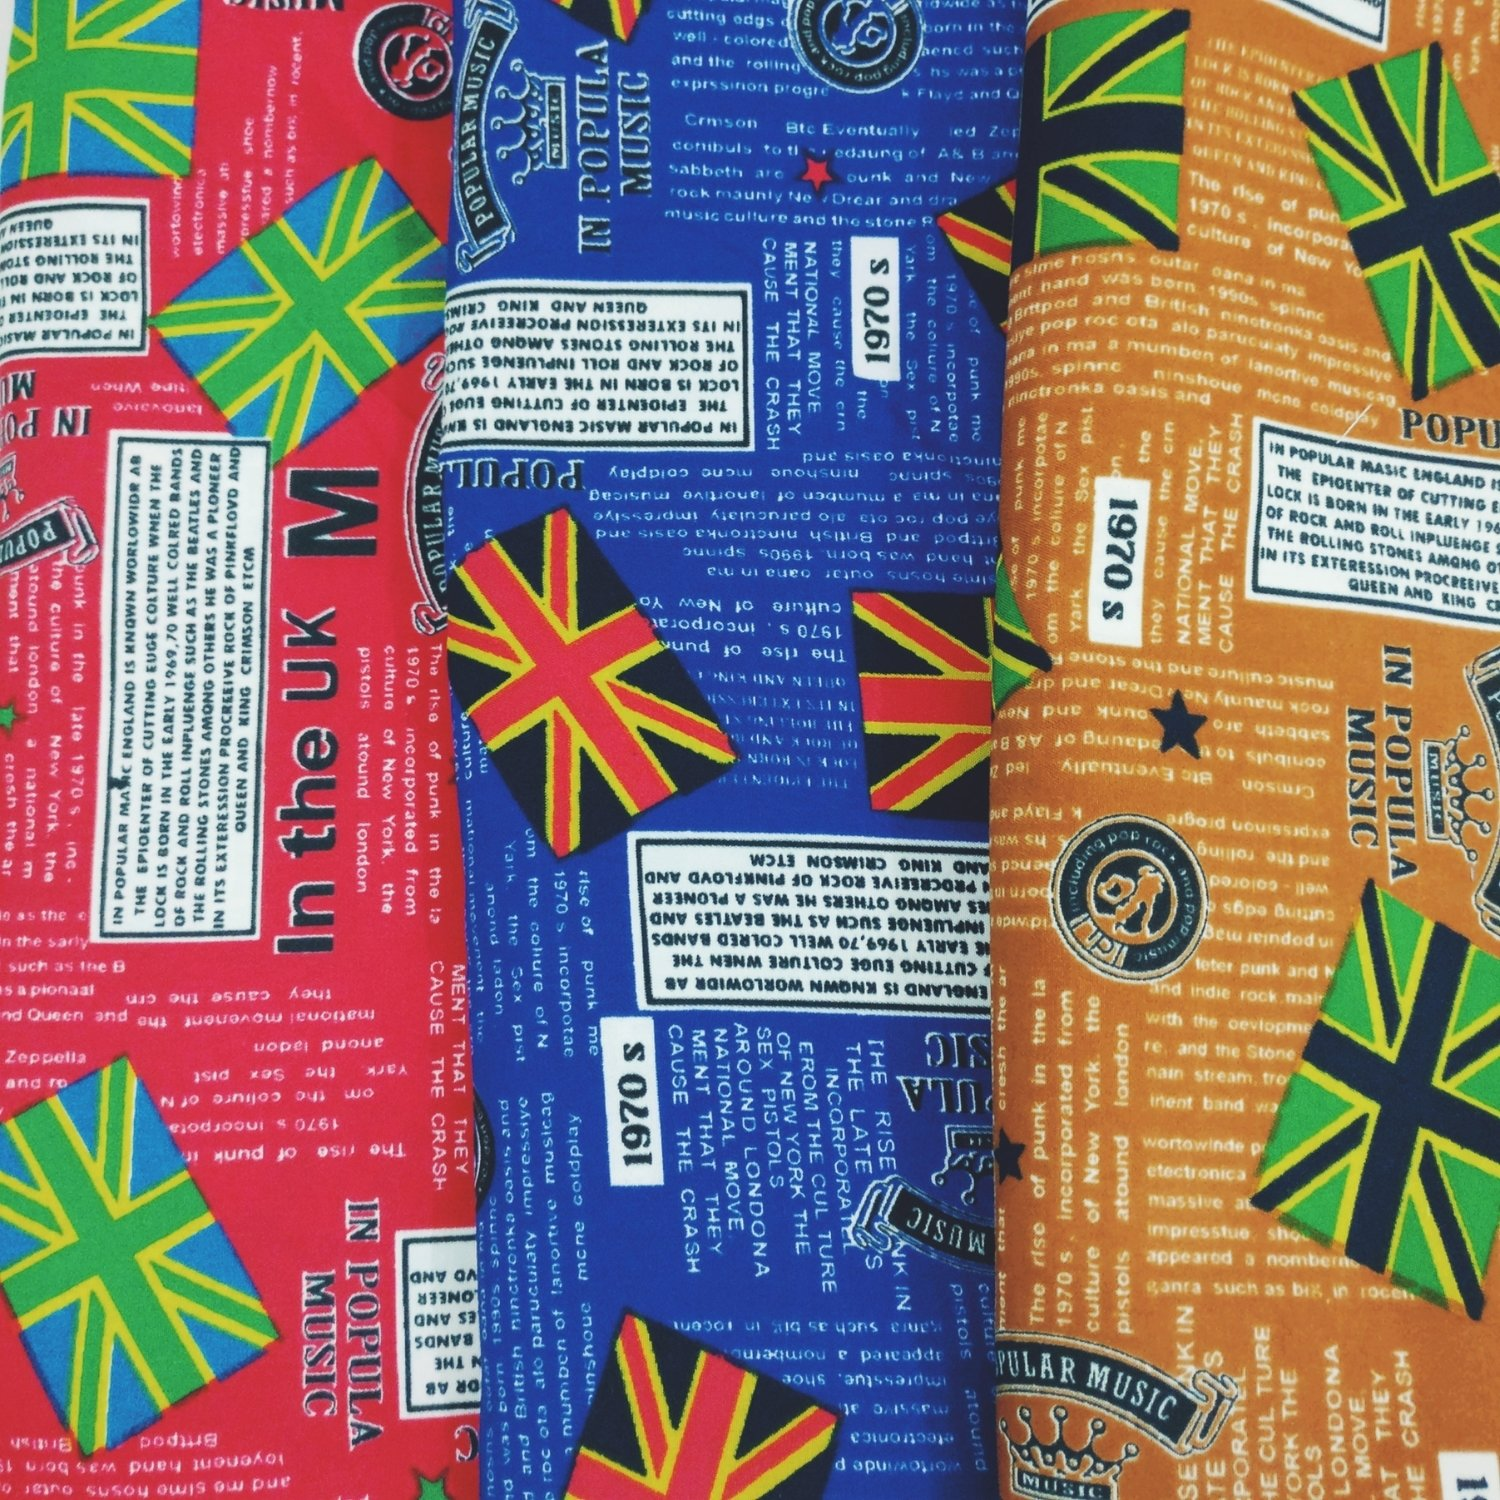 Magazine Print, Music in the UK, UK flags, sold my half meter